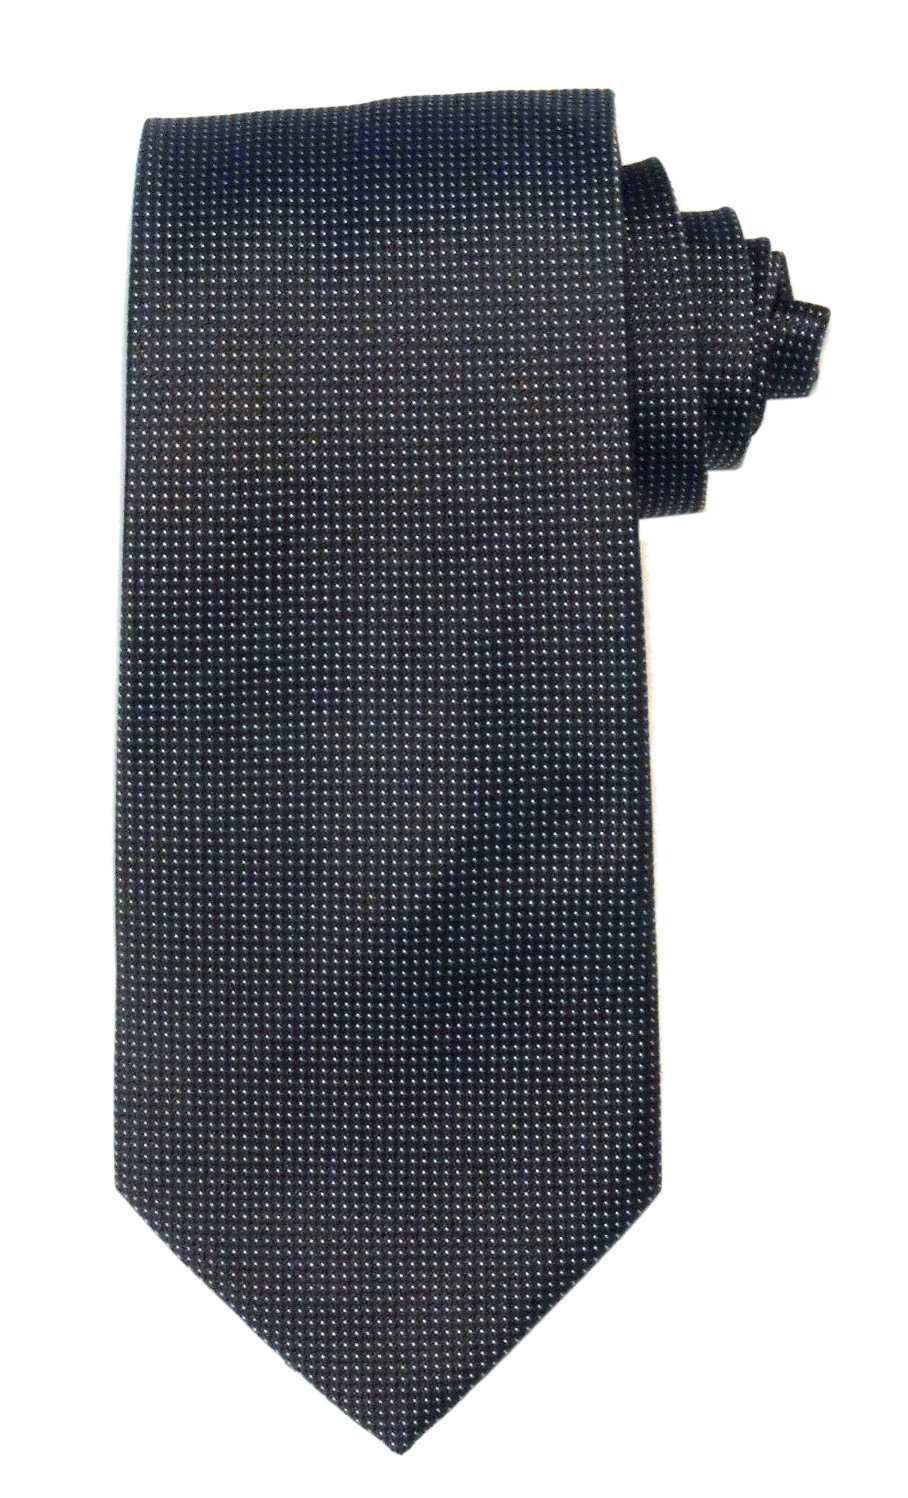 London Tie (Discontinued)